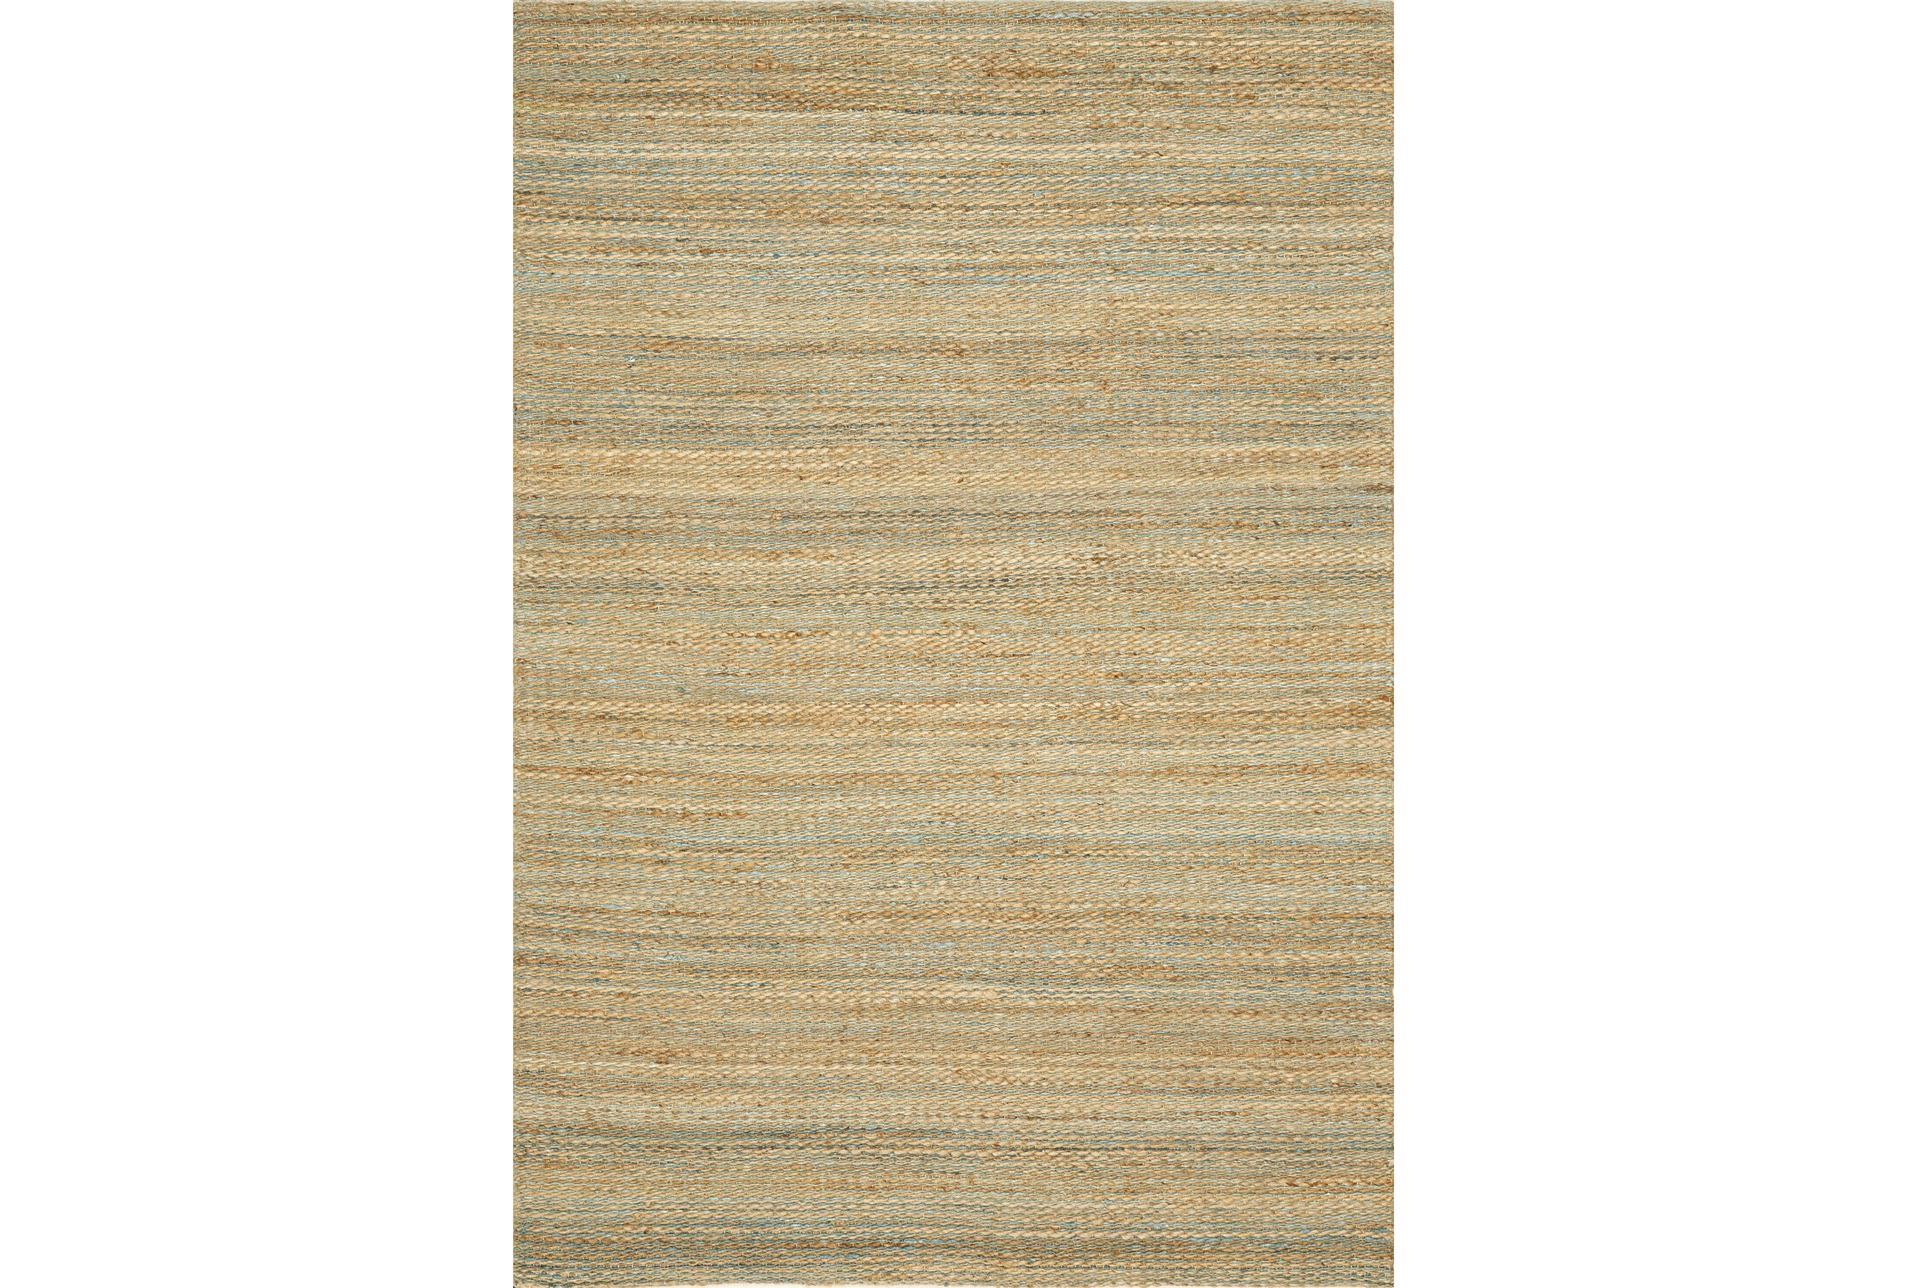 60x90 rug alvita teal living spaces for Living spaces rugs